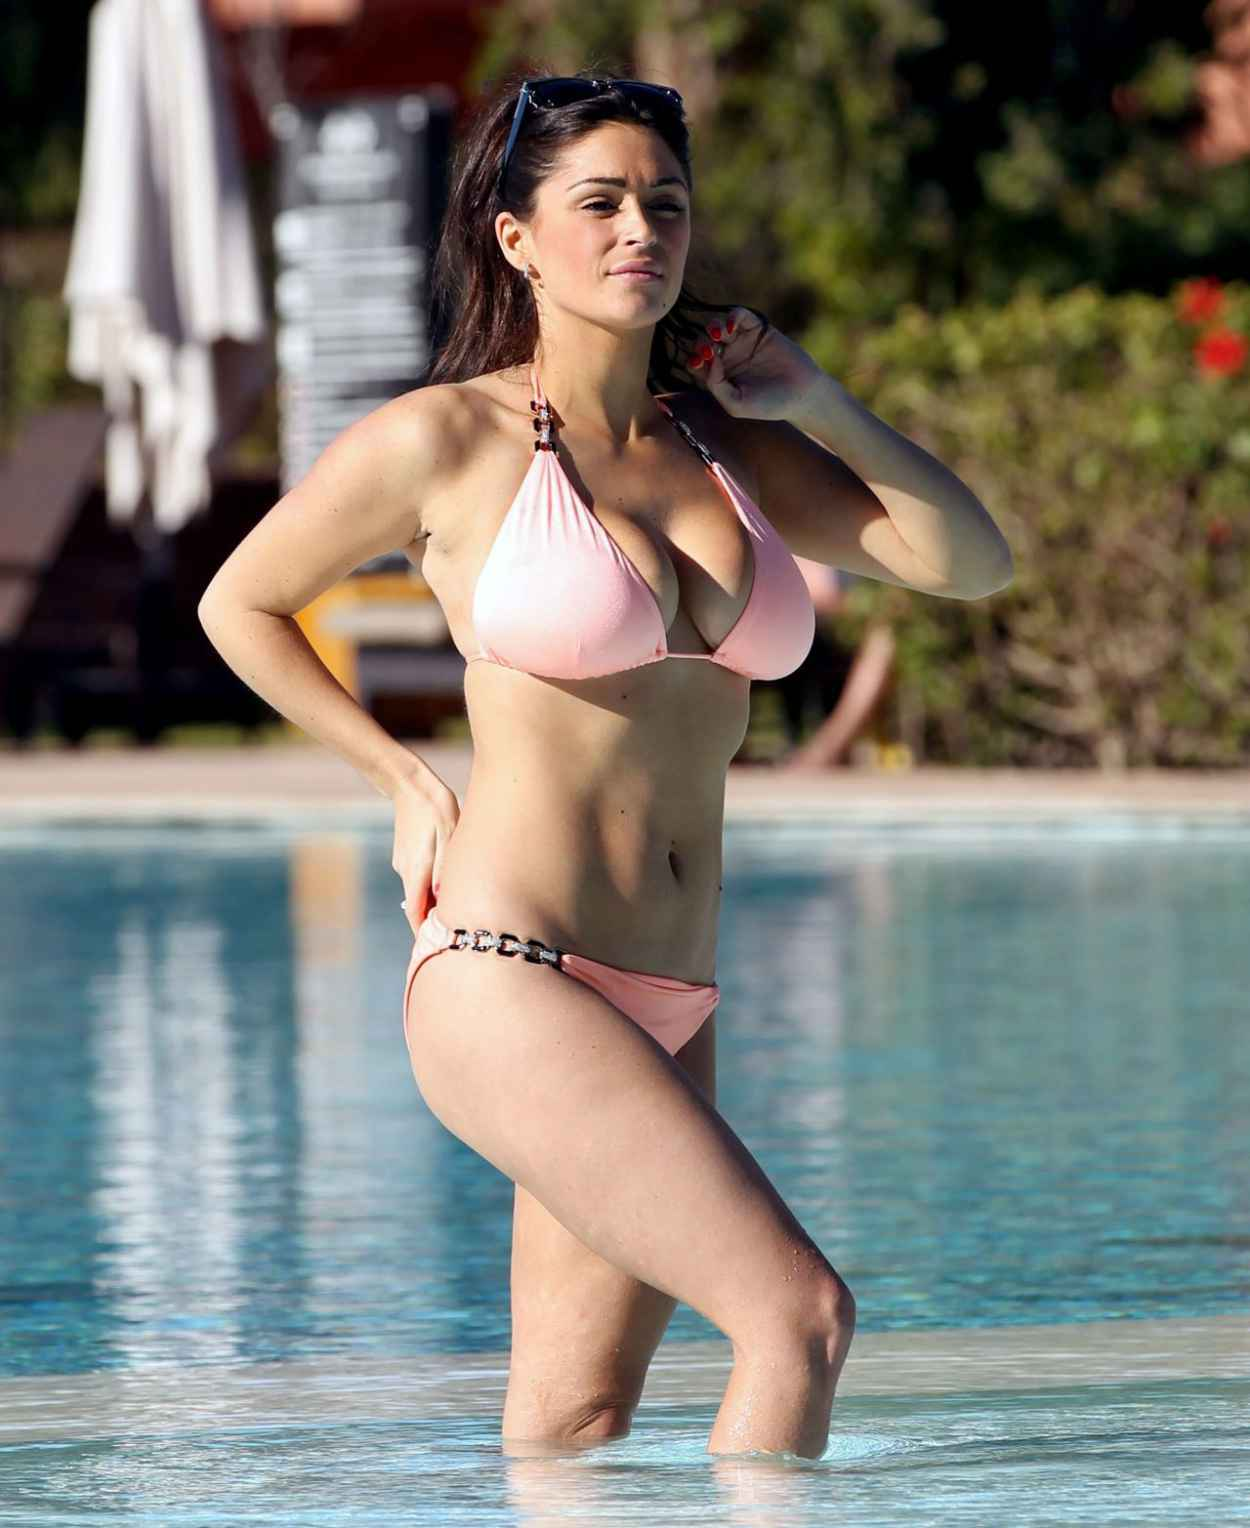 Casey Batchelor in a Bikini on the pool in Lanzarote Pic 31 of 35